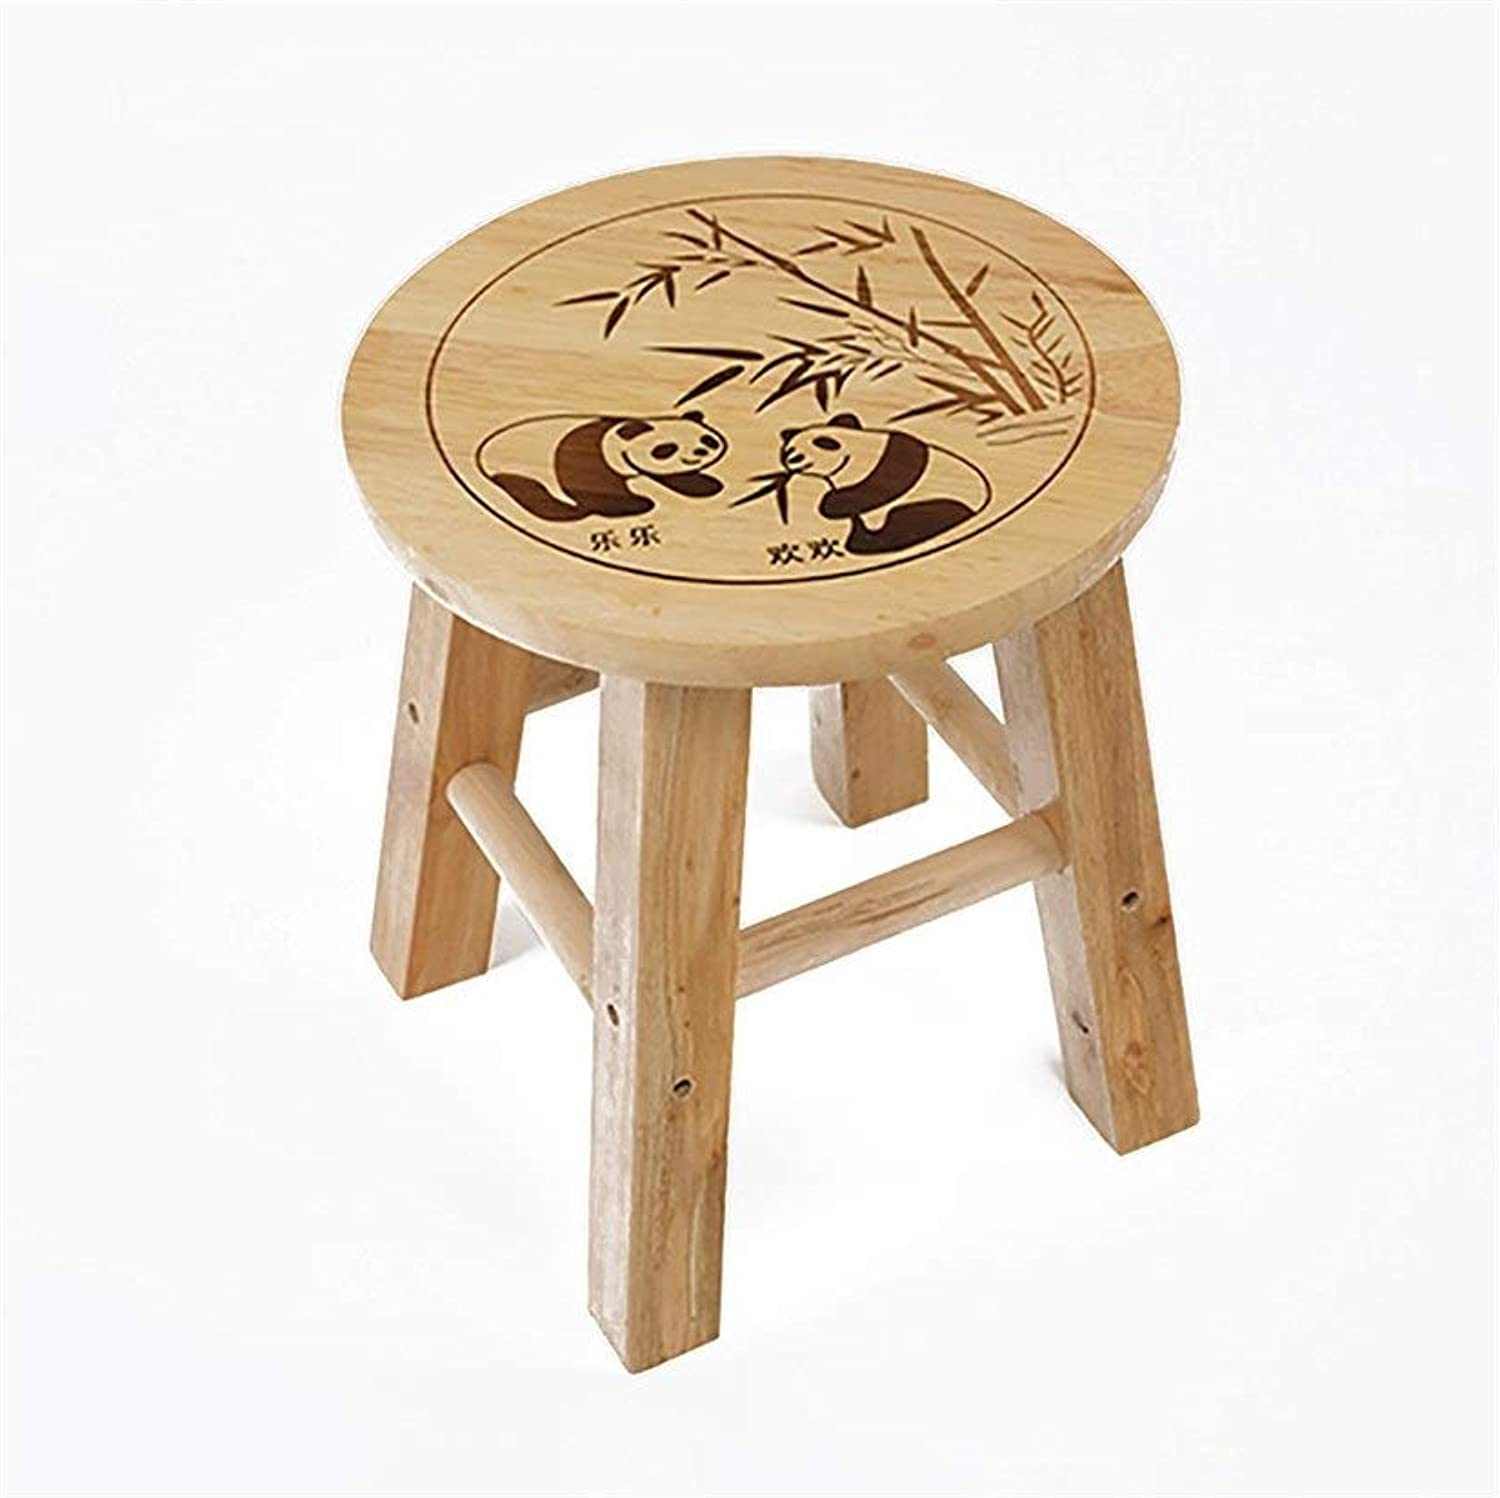 European Chair Solid Wood Small Round Stool, Panda Stool Change shoes Stool Bathroom Stool Simple Stool Wooden Stool Stool (Size   25  25cm)